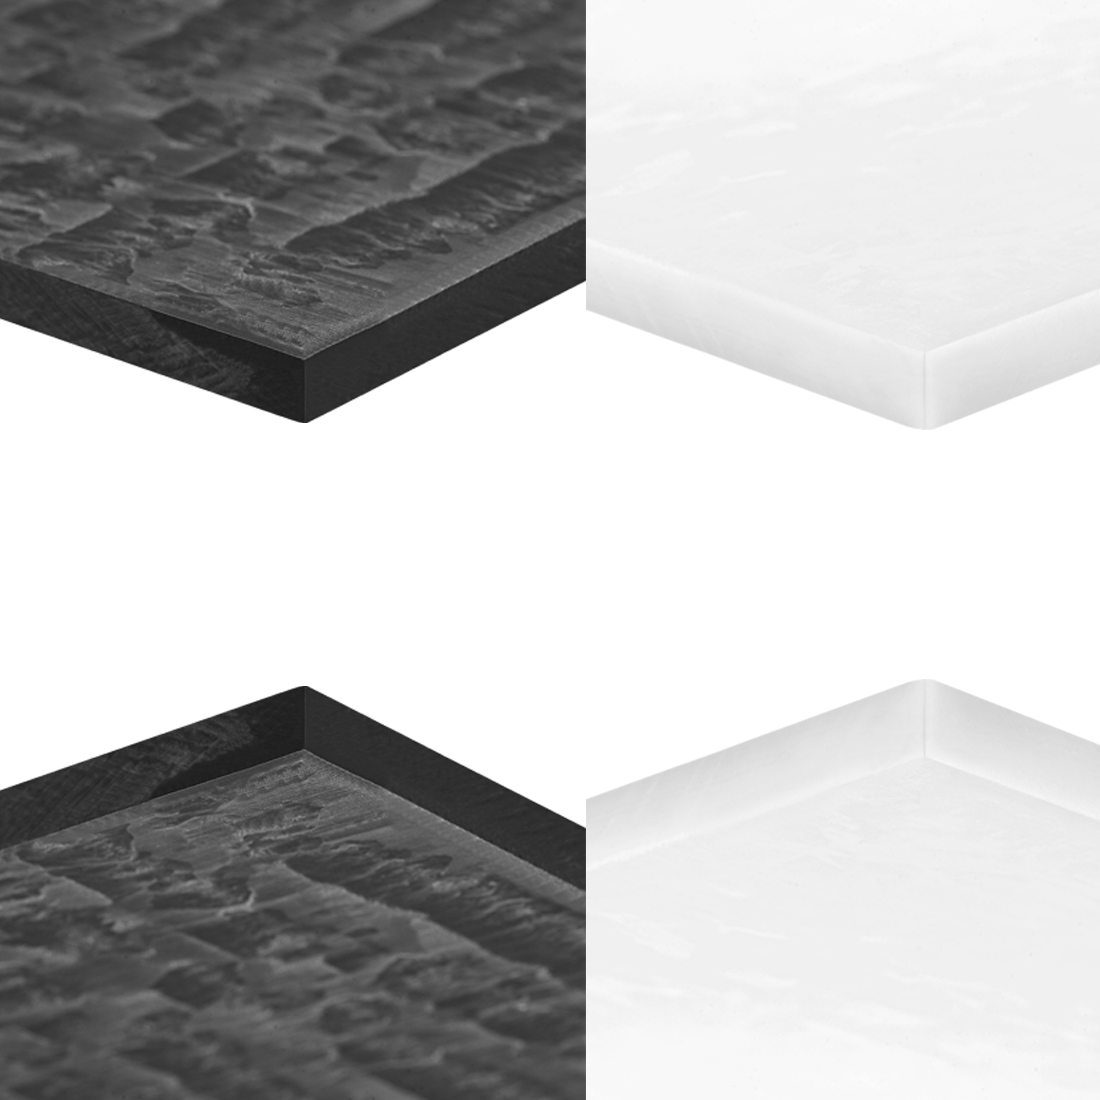 Uxcell Acetal POM Sheet Polyoxymethylene Plate Sheet Black White For Machining And Manufacture Of Precision Parts